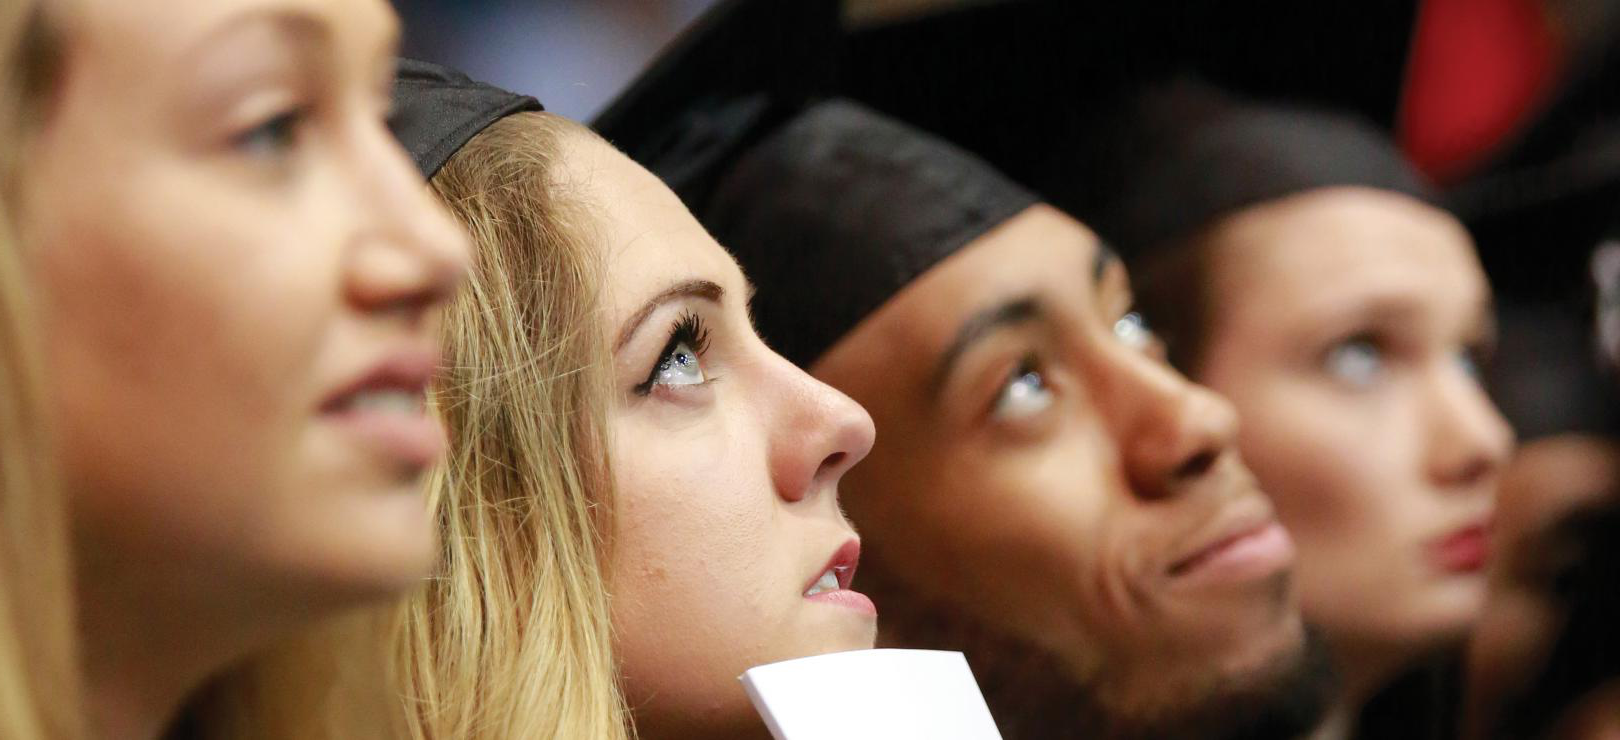 Image of students in Commencement caps and gowns, listening to unseen speaker